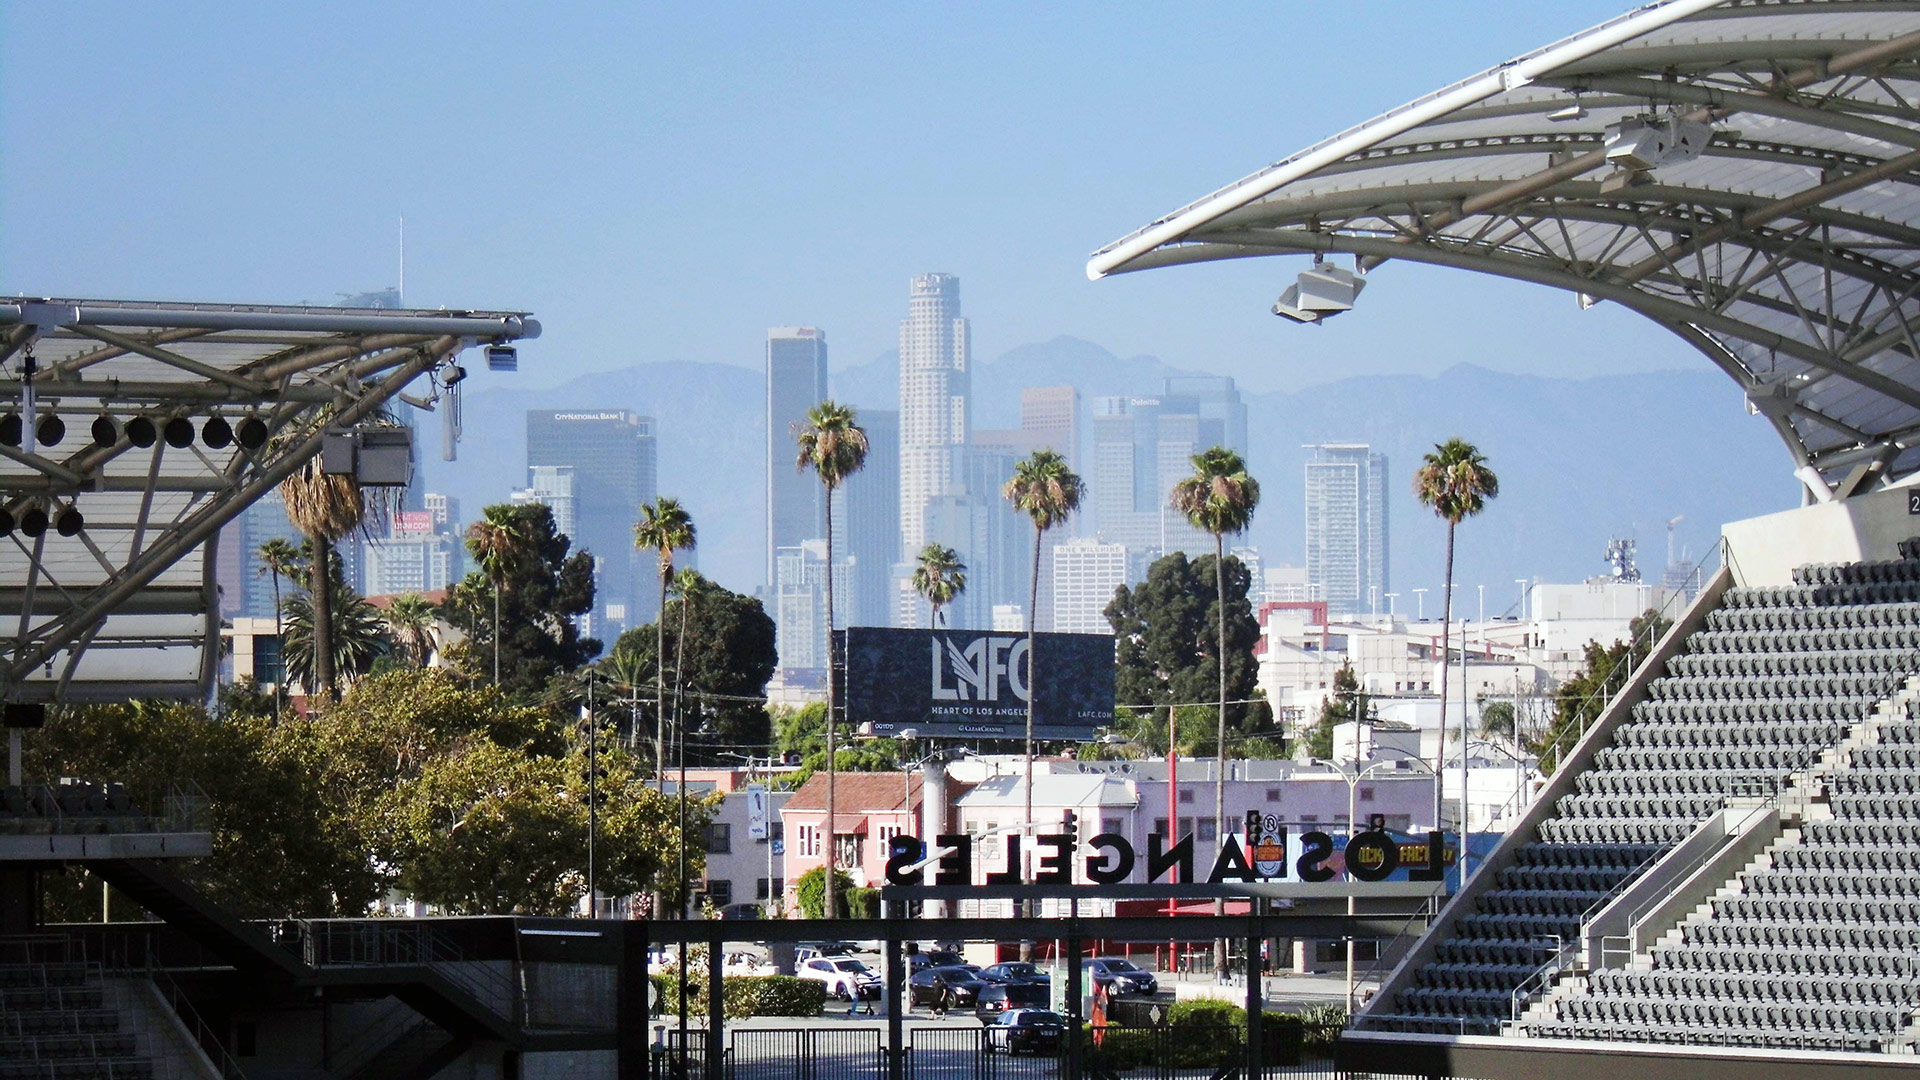 A framed view of the L.A. skyline from the southern stands at Banc of California Stadium | Sandi Hemmerlein